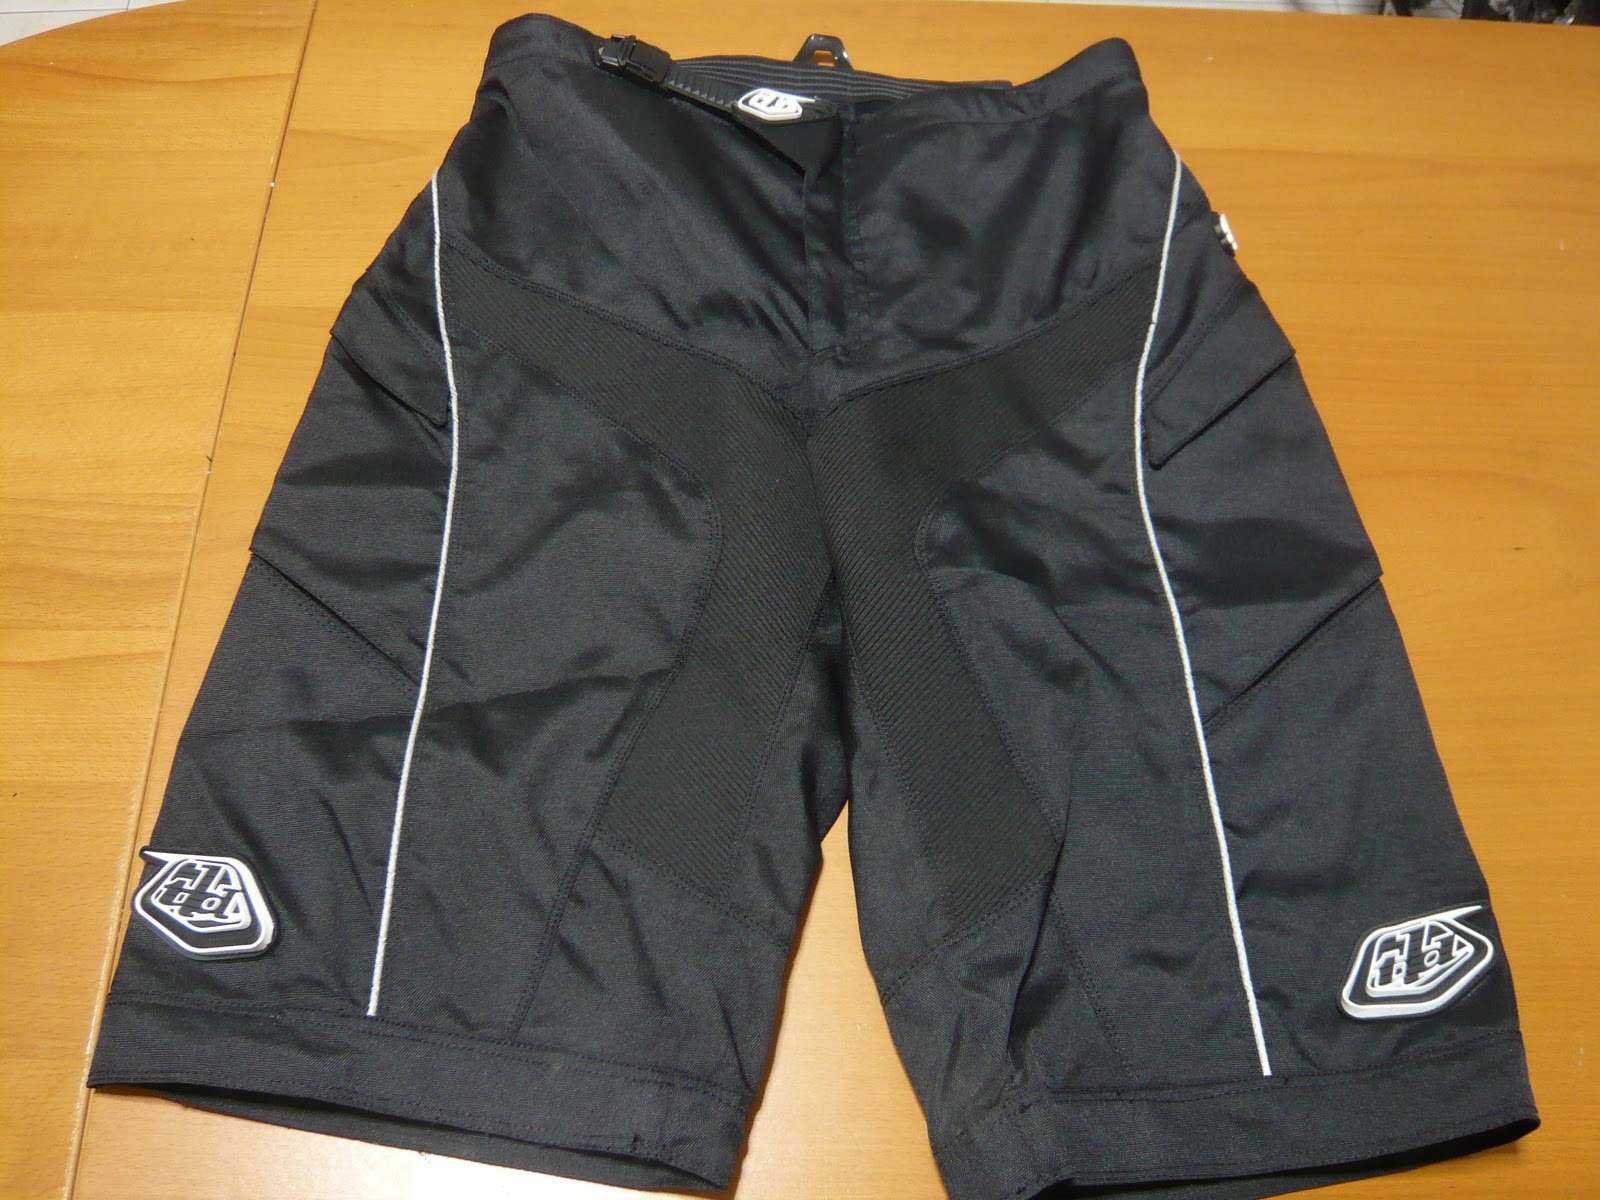 0e5680c9a These are real TLD (Troy Lee Designs) Moto Bike Shorts best used for All  Mountain Freeride Downhill type of mountainbike riding. 600 polyester is  about as ...